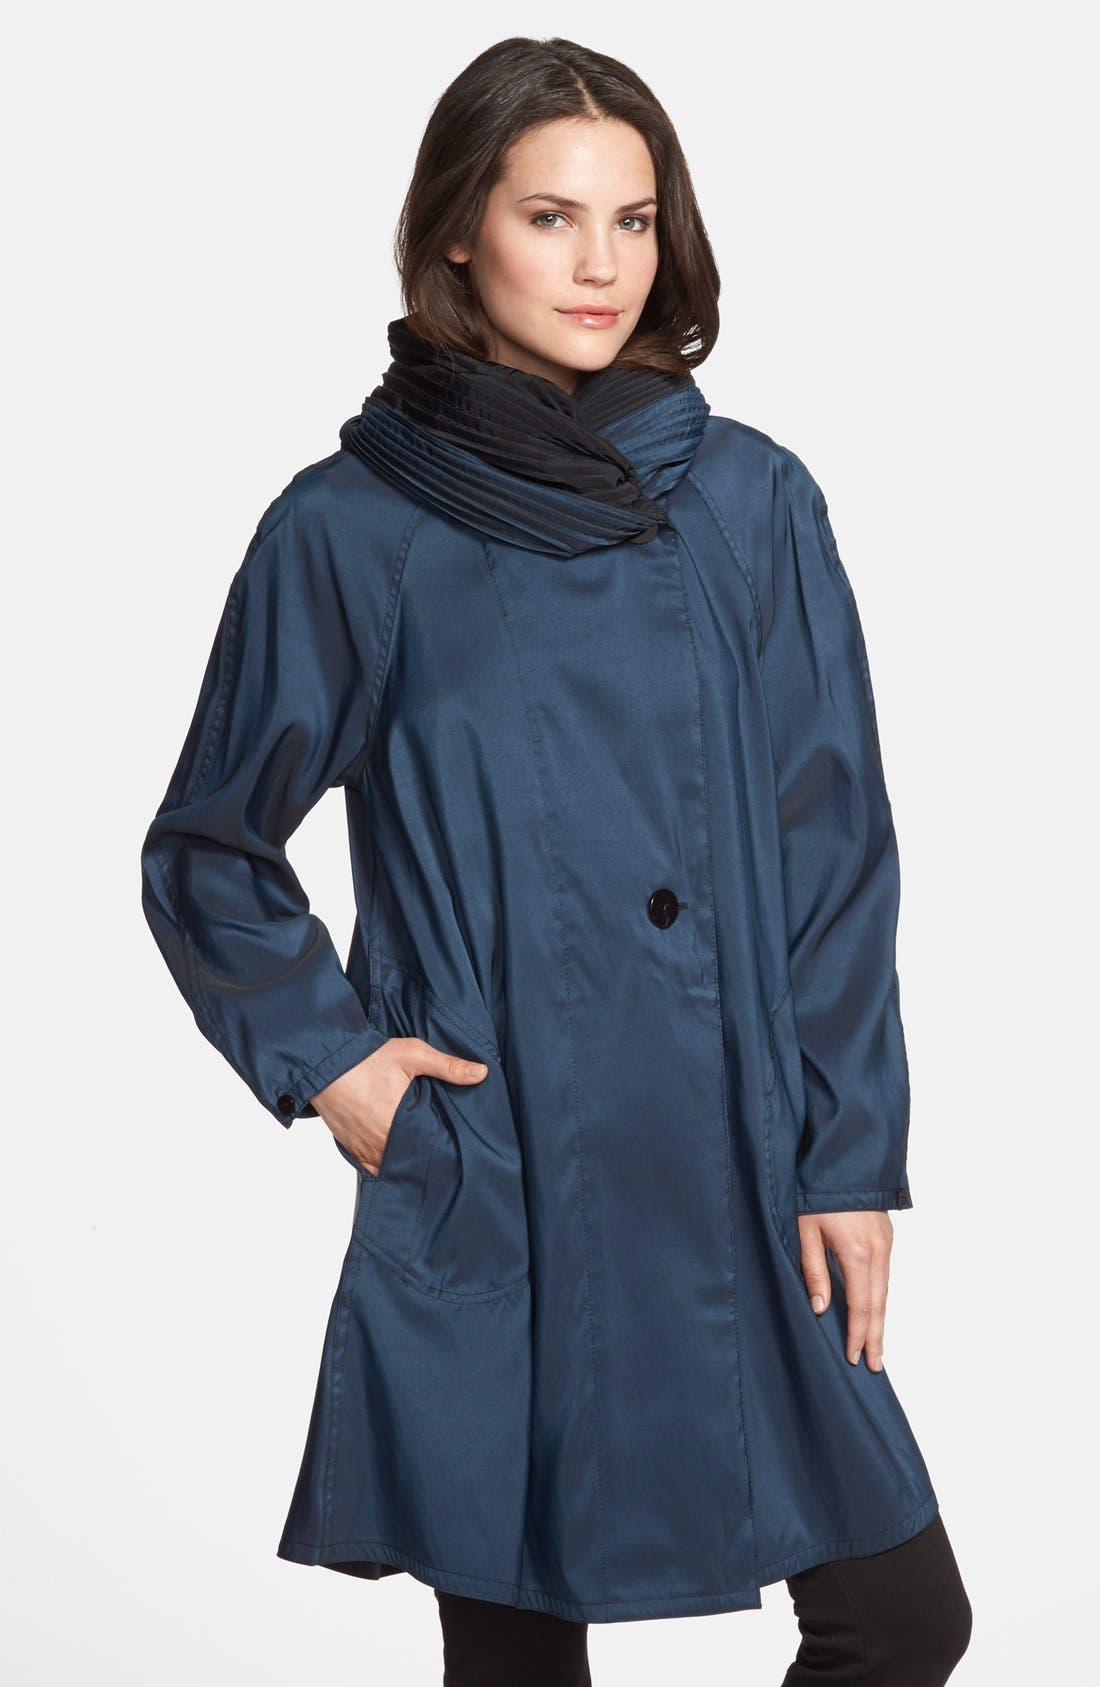 Mycra Pac Designer Wear Reversible Pleat Hood Packable Travel Coat